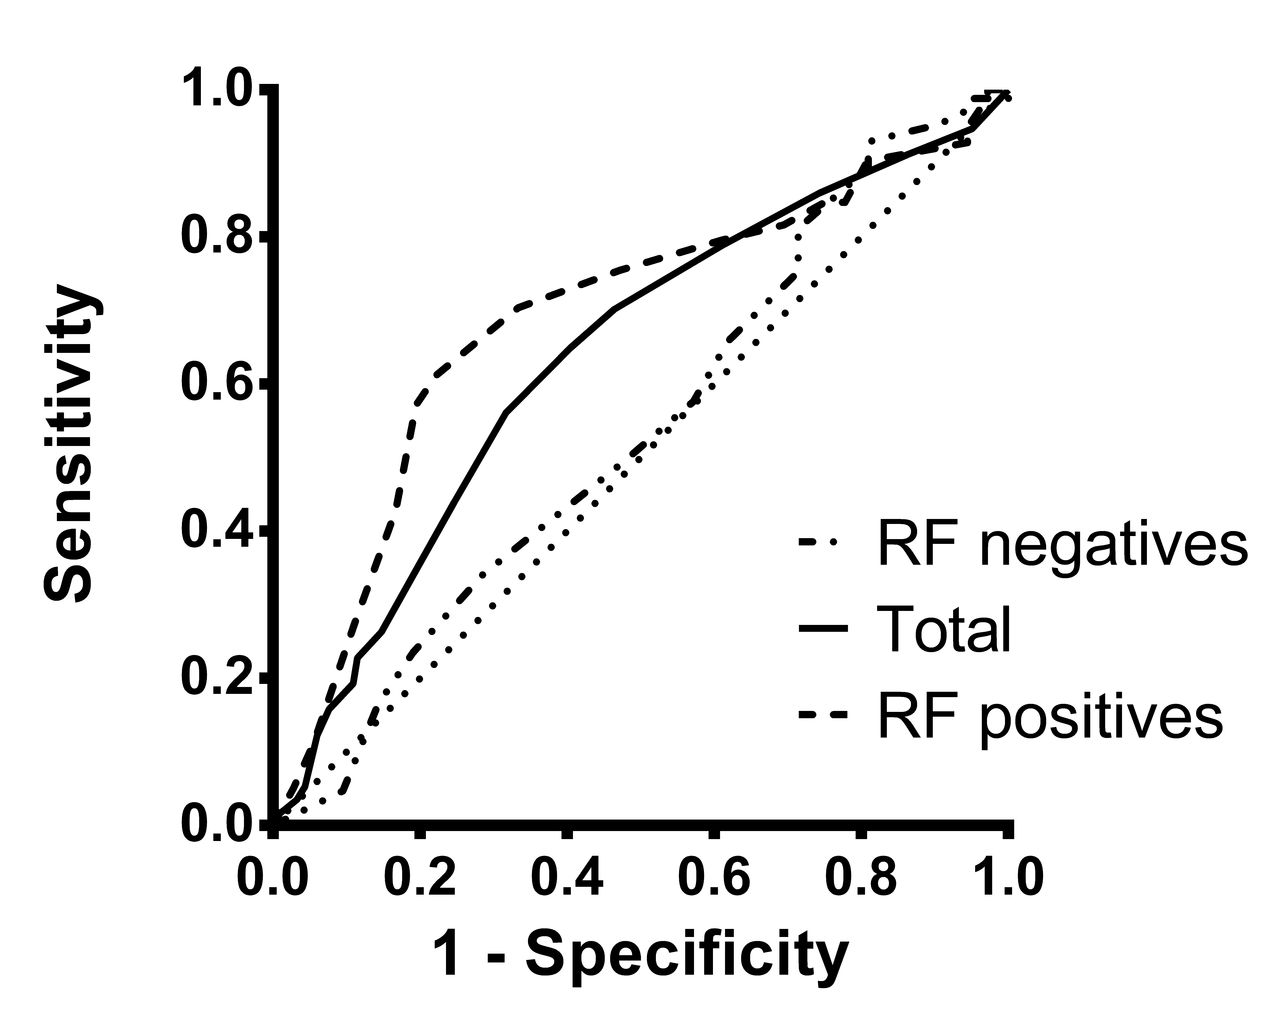 Fig 1. ROC curve for RAMIS synovitis at baseline and prediction of radiographic progression in the total population/RF negatives/RF positives.